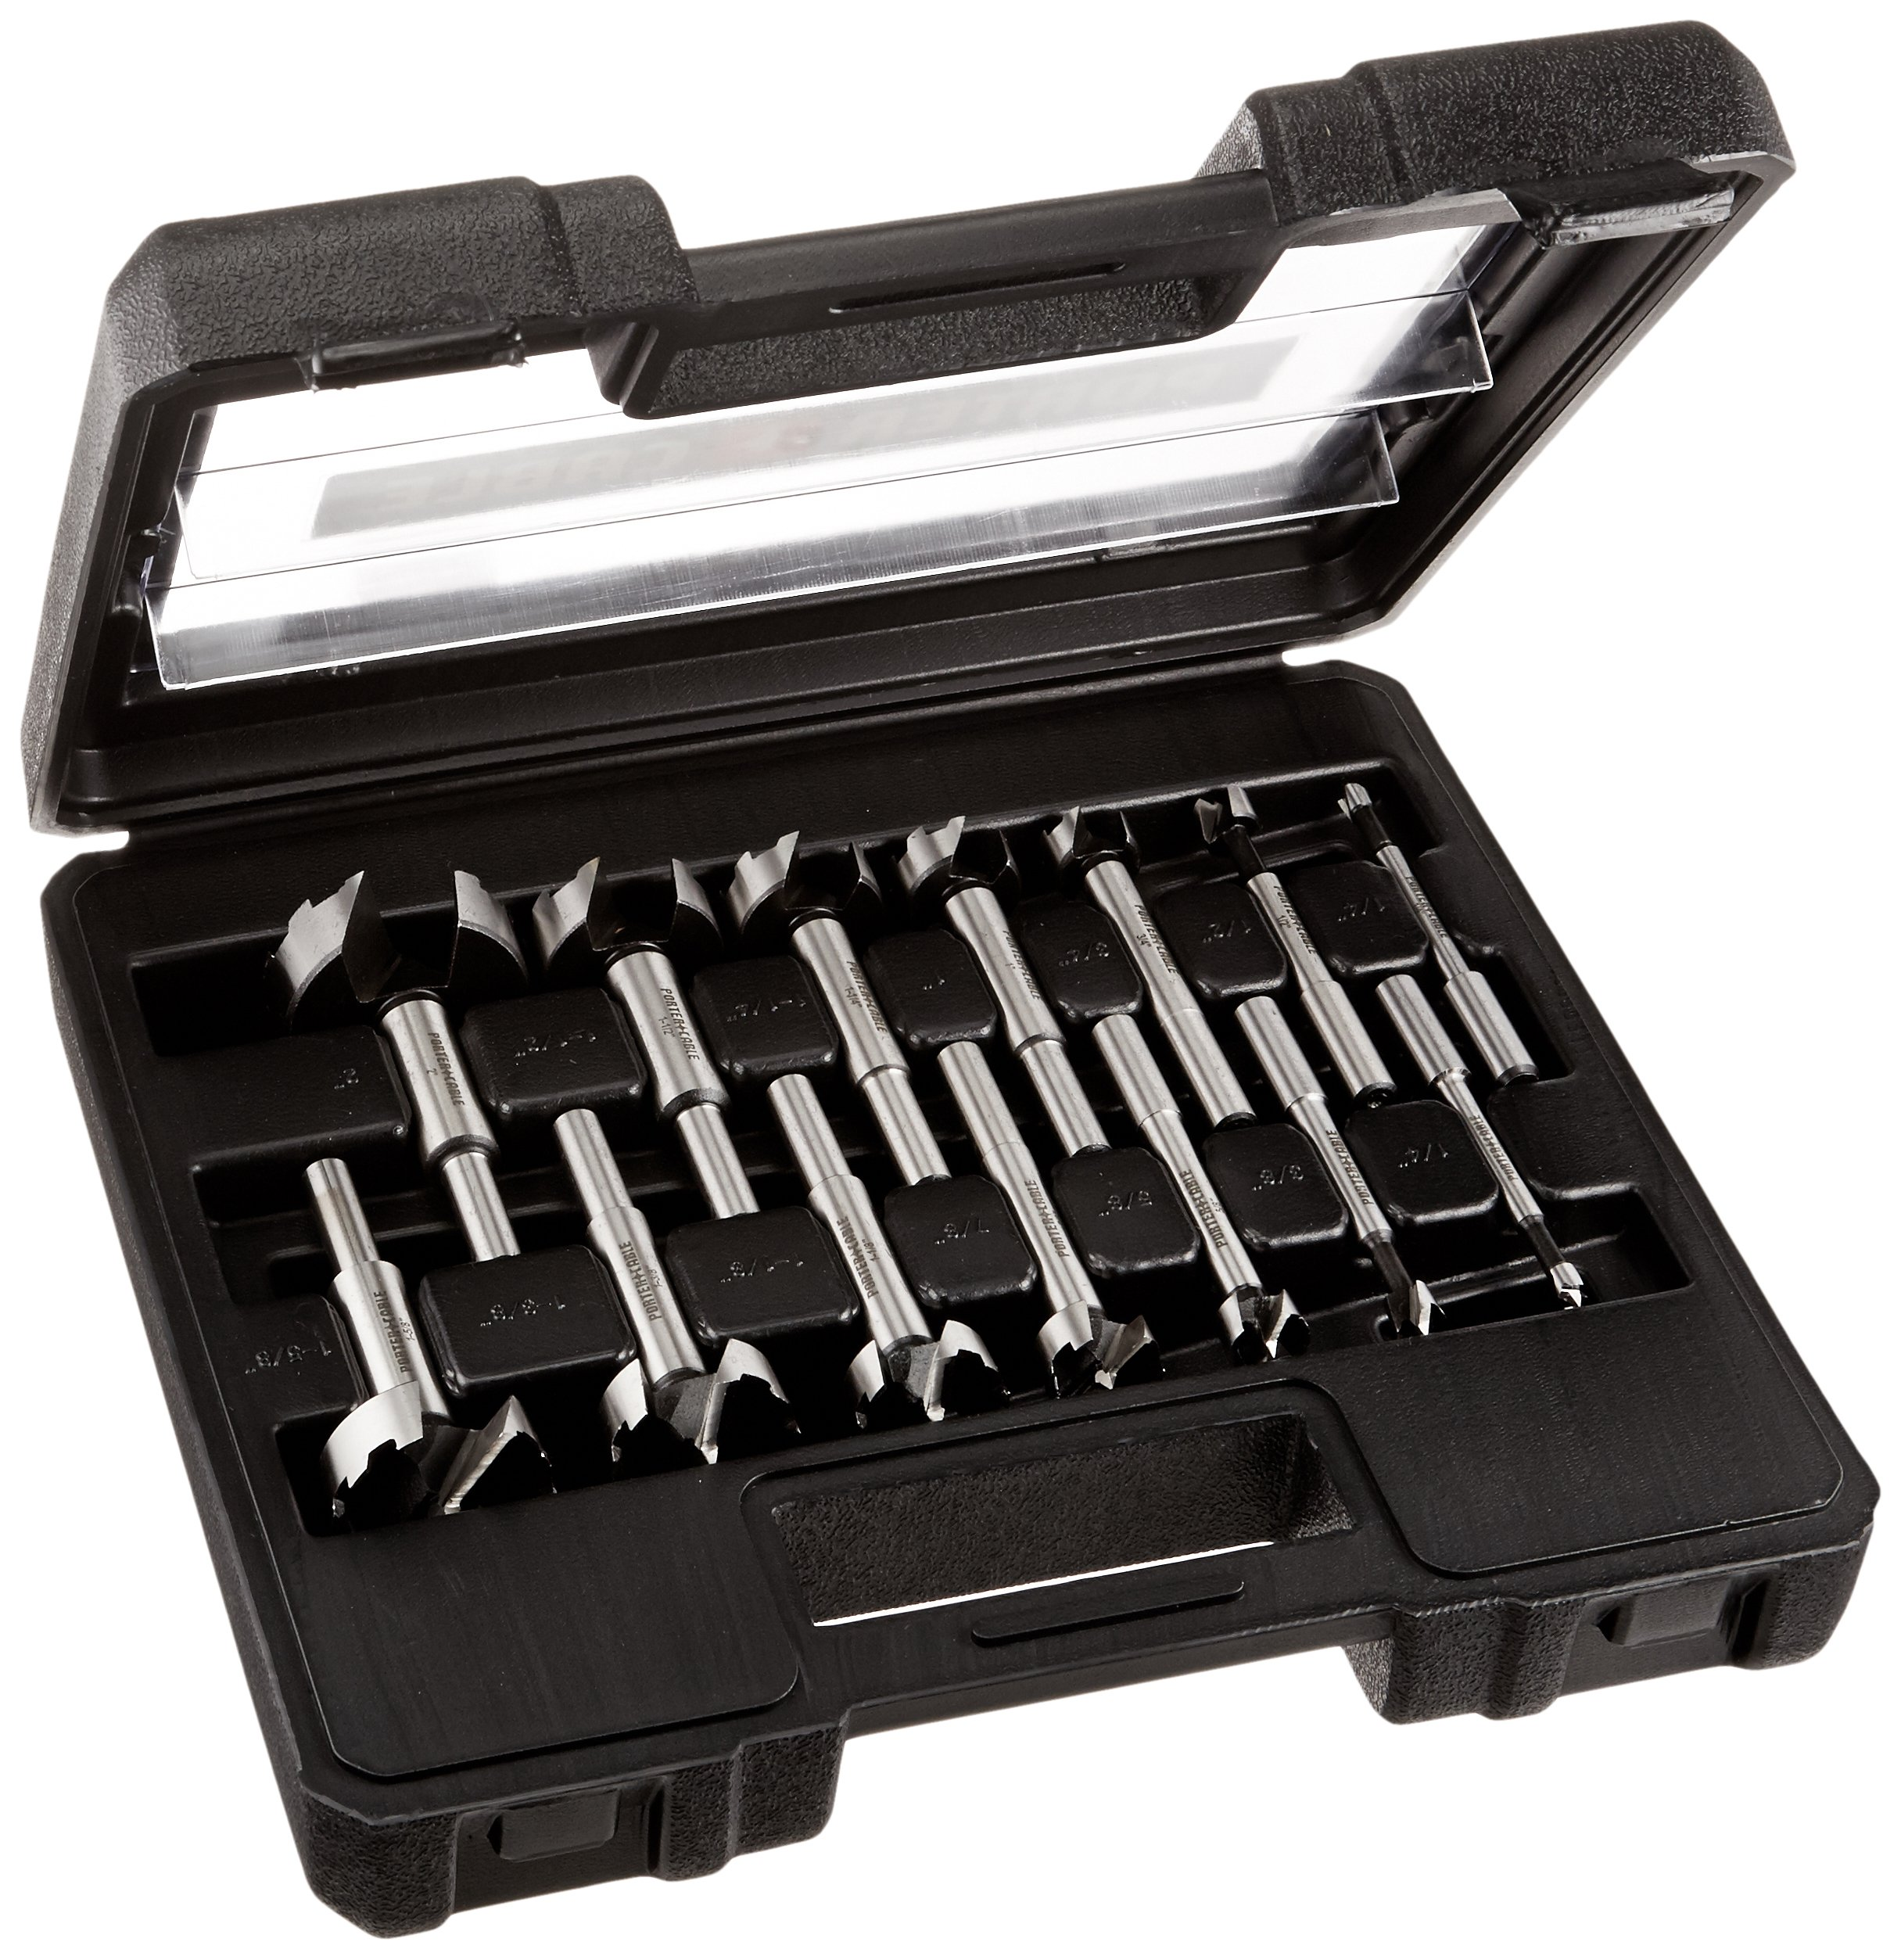 PORTER-CABLE PC1014 Forstner Bit Set, 14-Piece